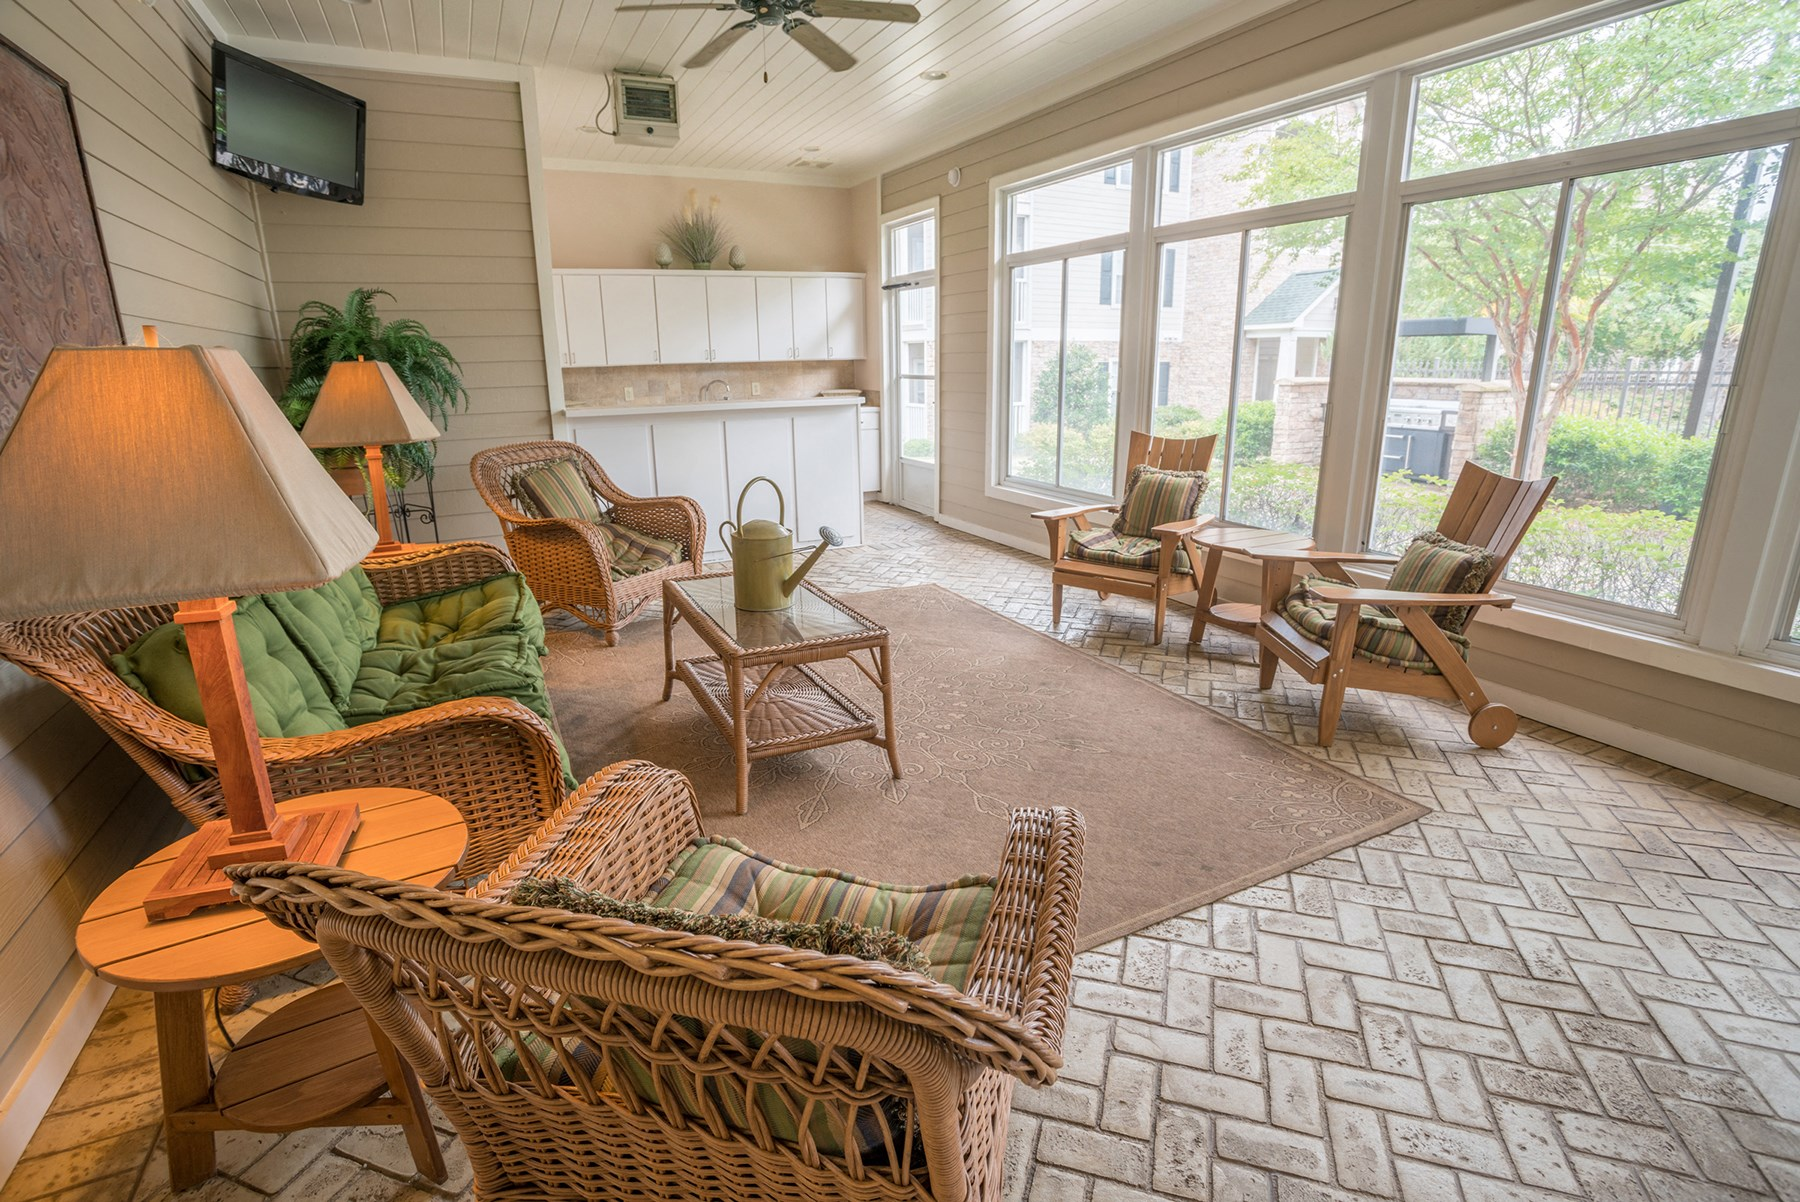 Clubhouse at Verandas at Taylor Oaks Apartments in Montgomery, AL